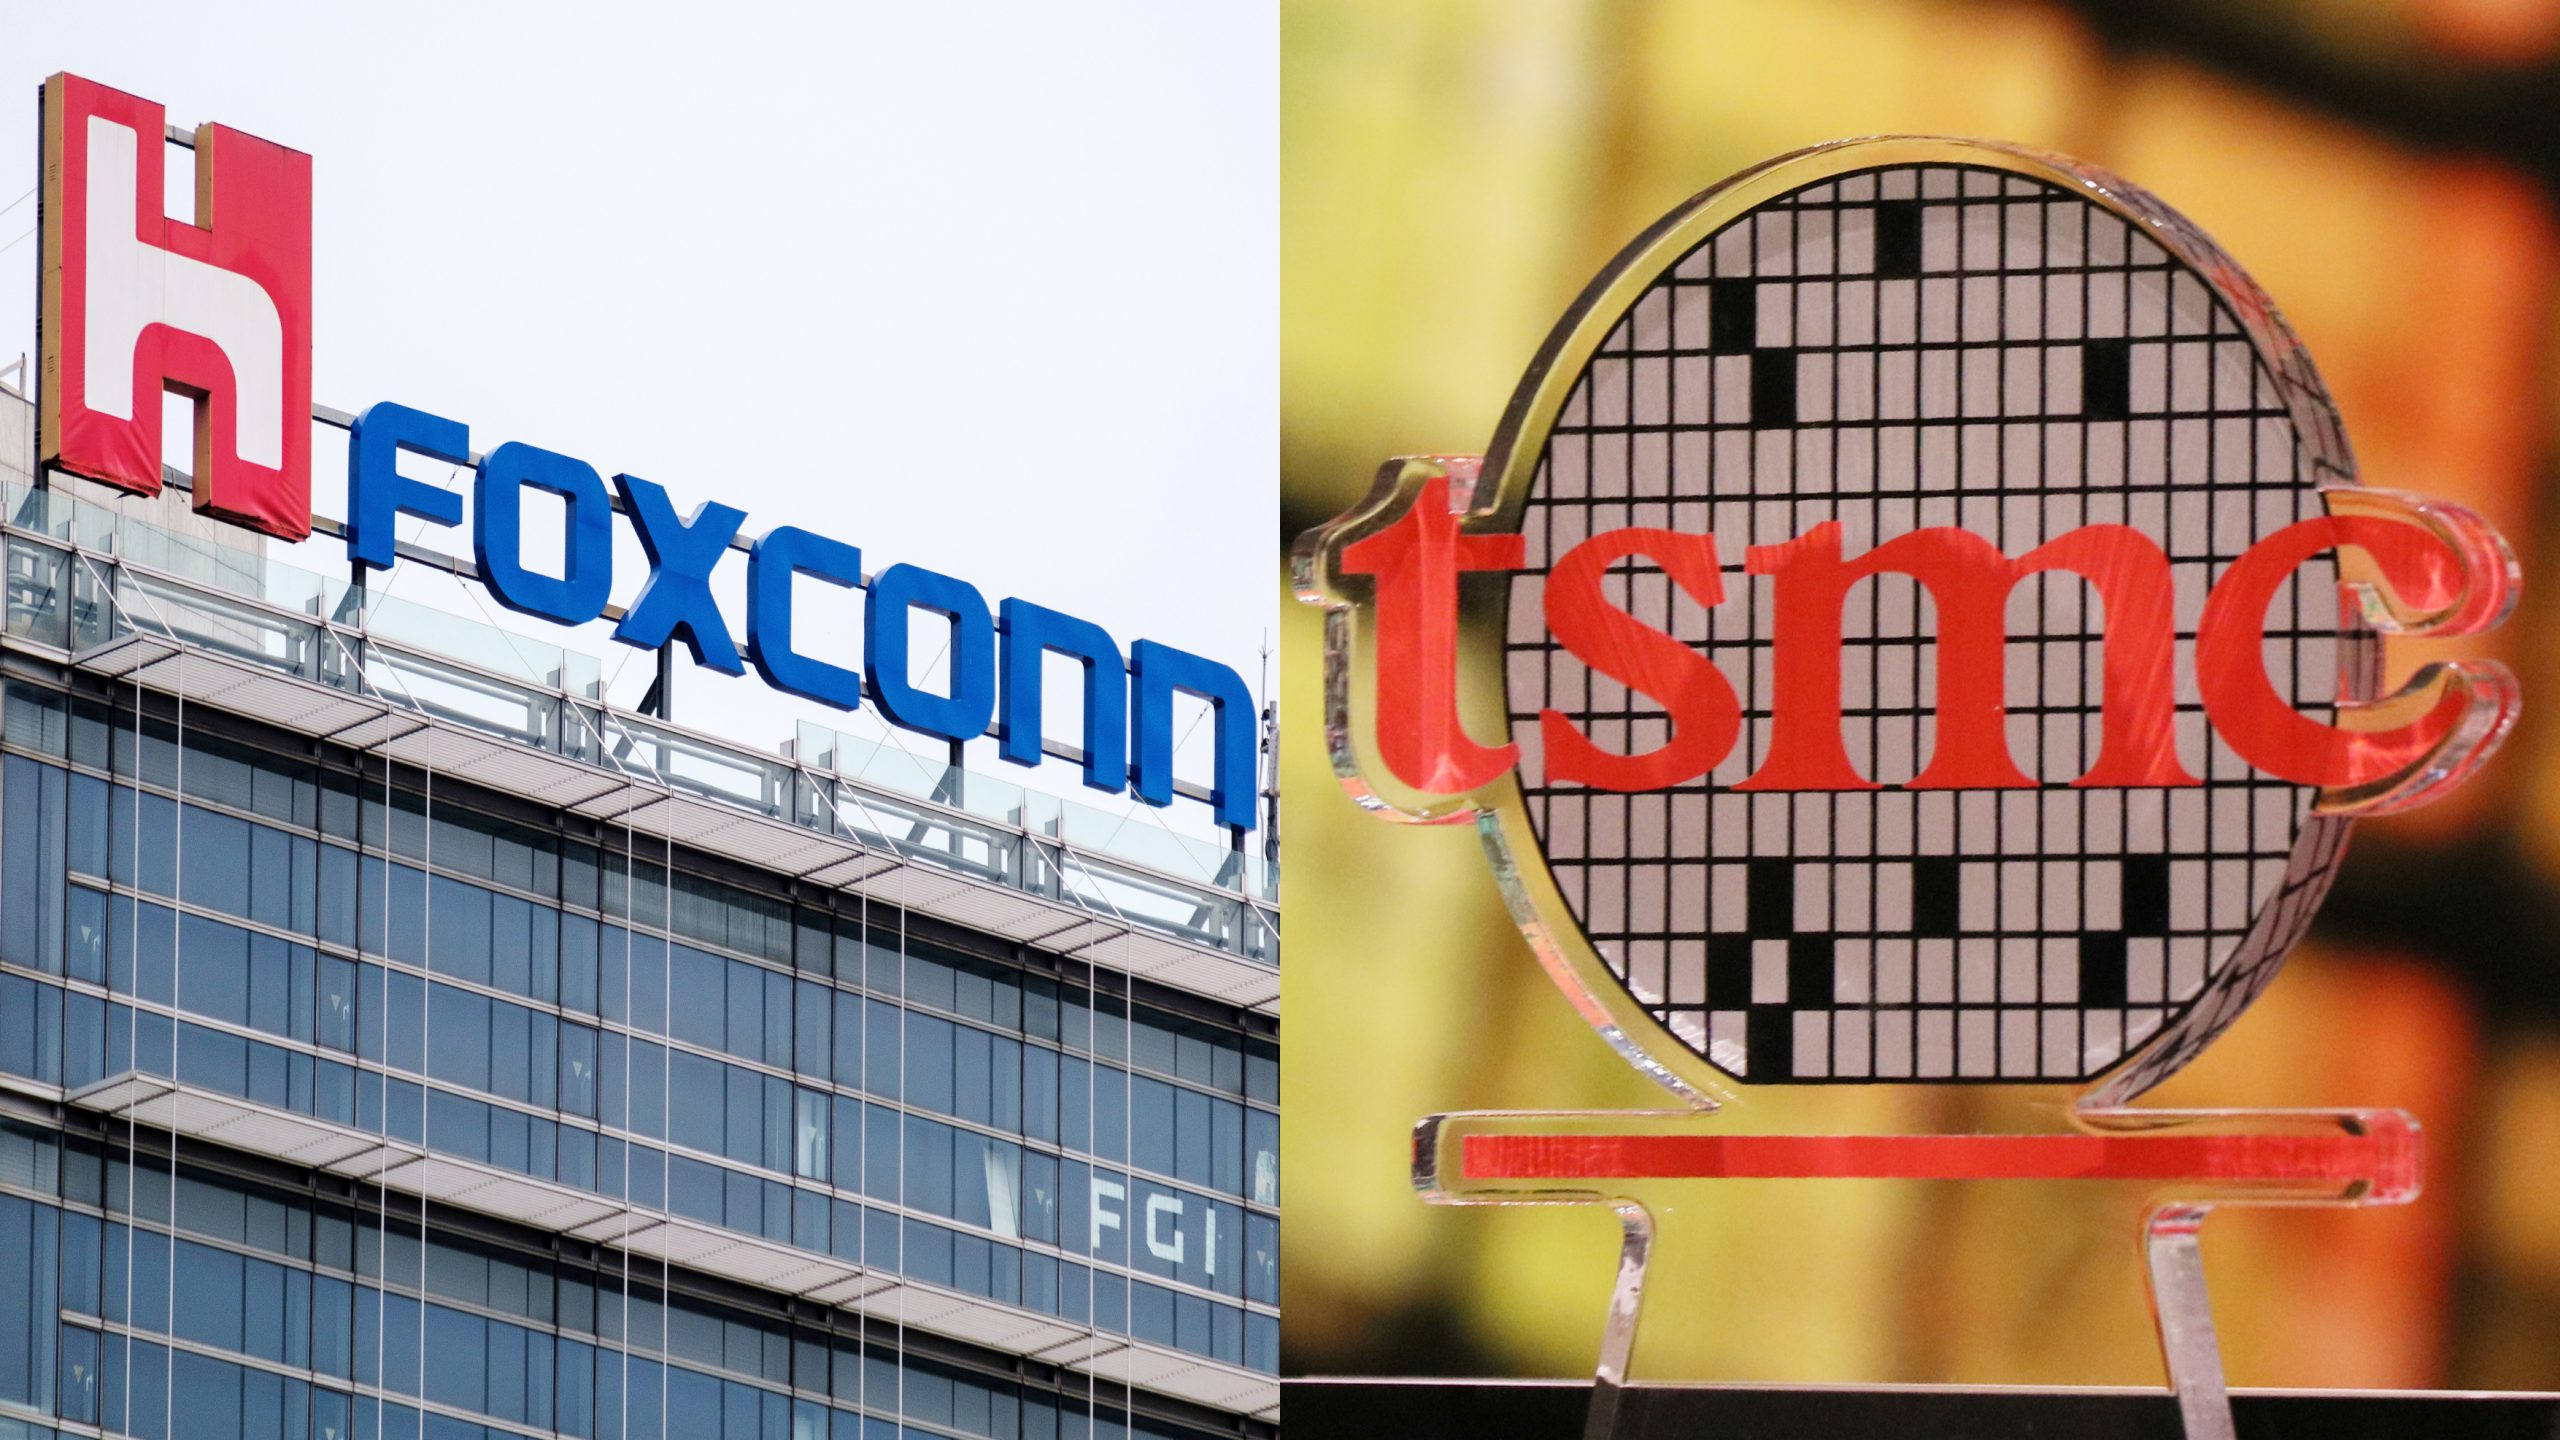 Foxconn and TSMC are Buying Covid 19 Vaccines for Taiwan